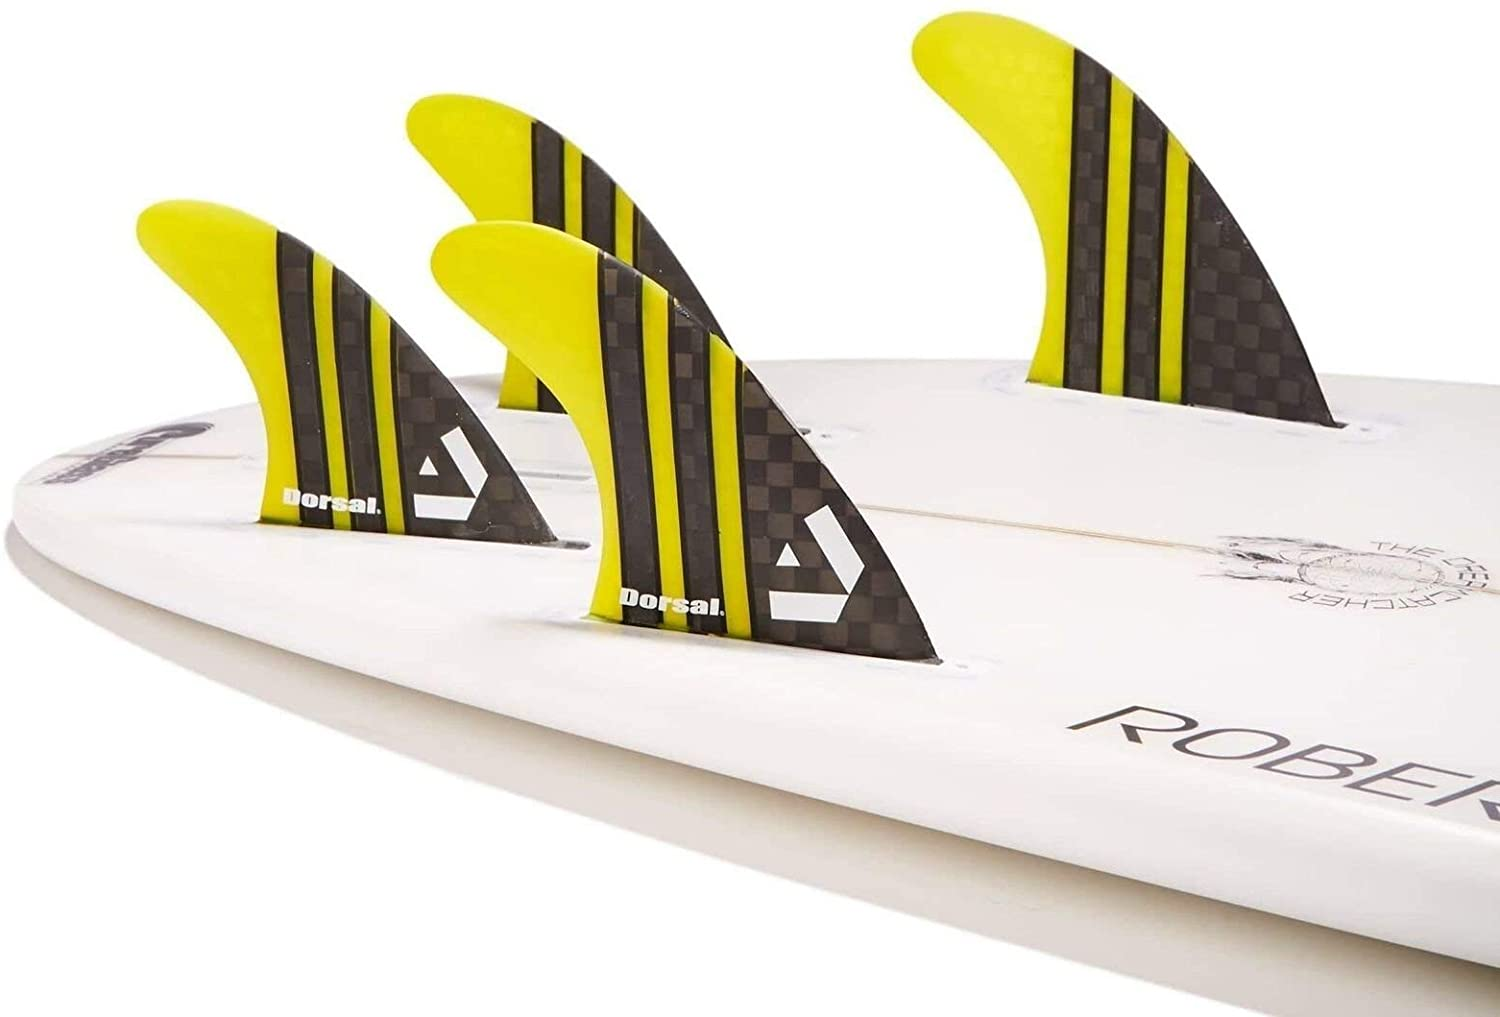 DORSAL Carbon Hexcore Quad Surfboard Fins (4) Honeycomb FUT Base Yellow